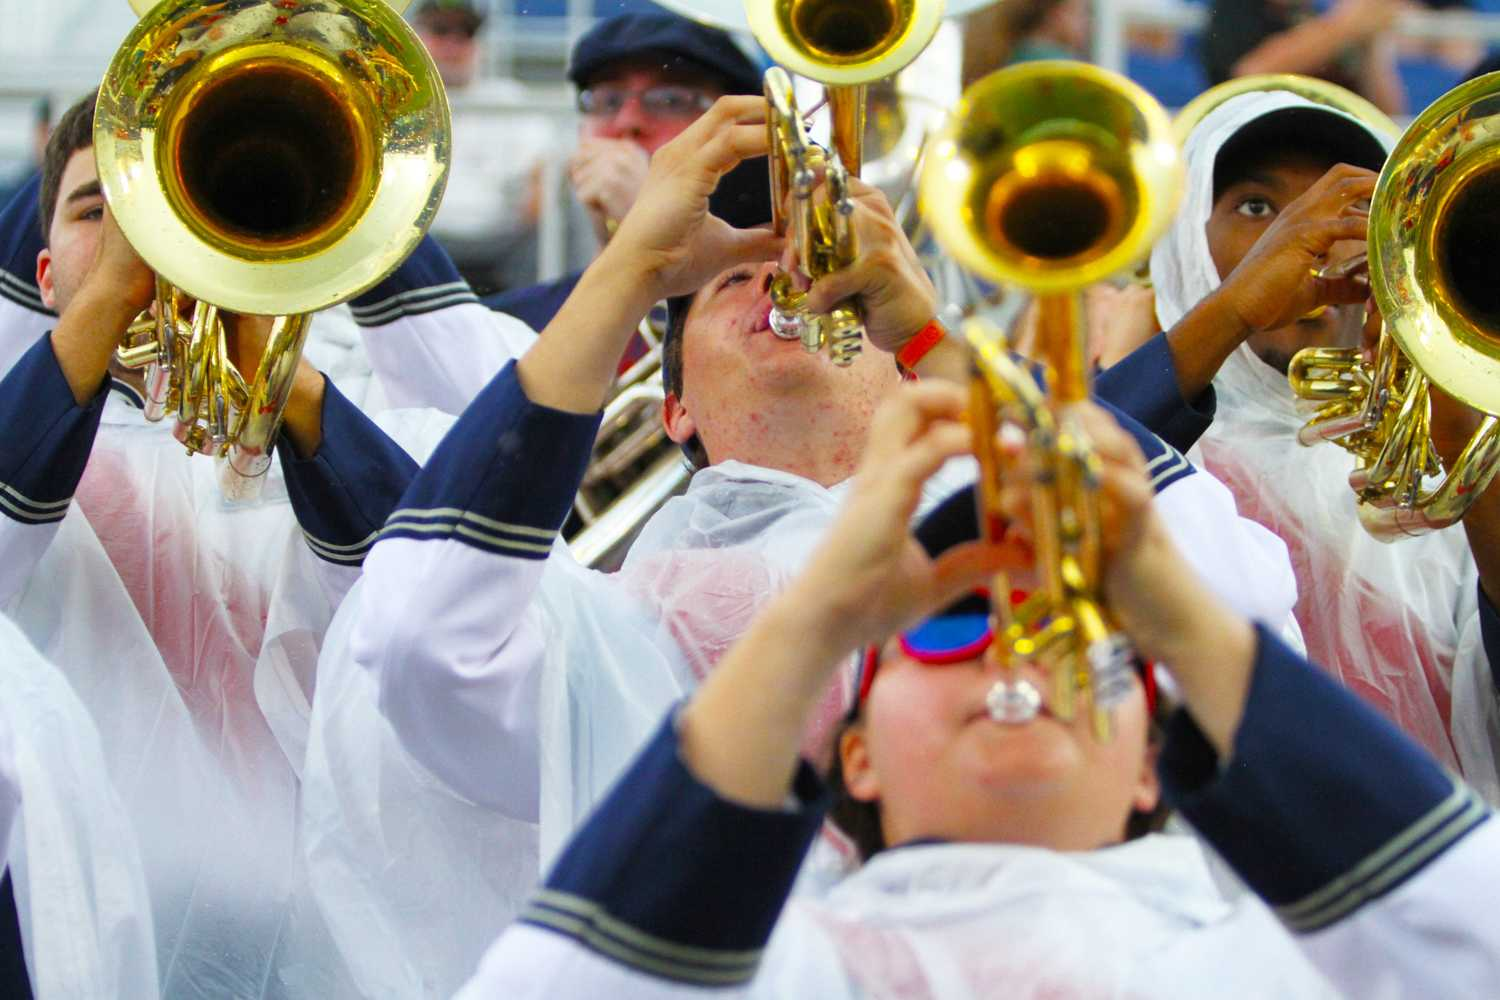 FAU Band members light up the crowd with funky beats, rain or shine. Jessica Wilkerson | Contributing Photograpoher